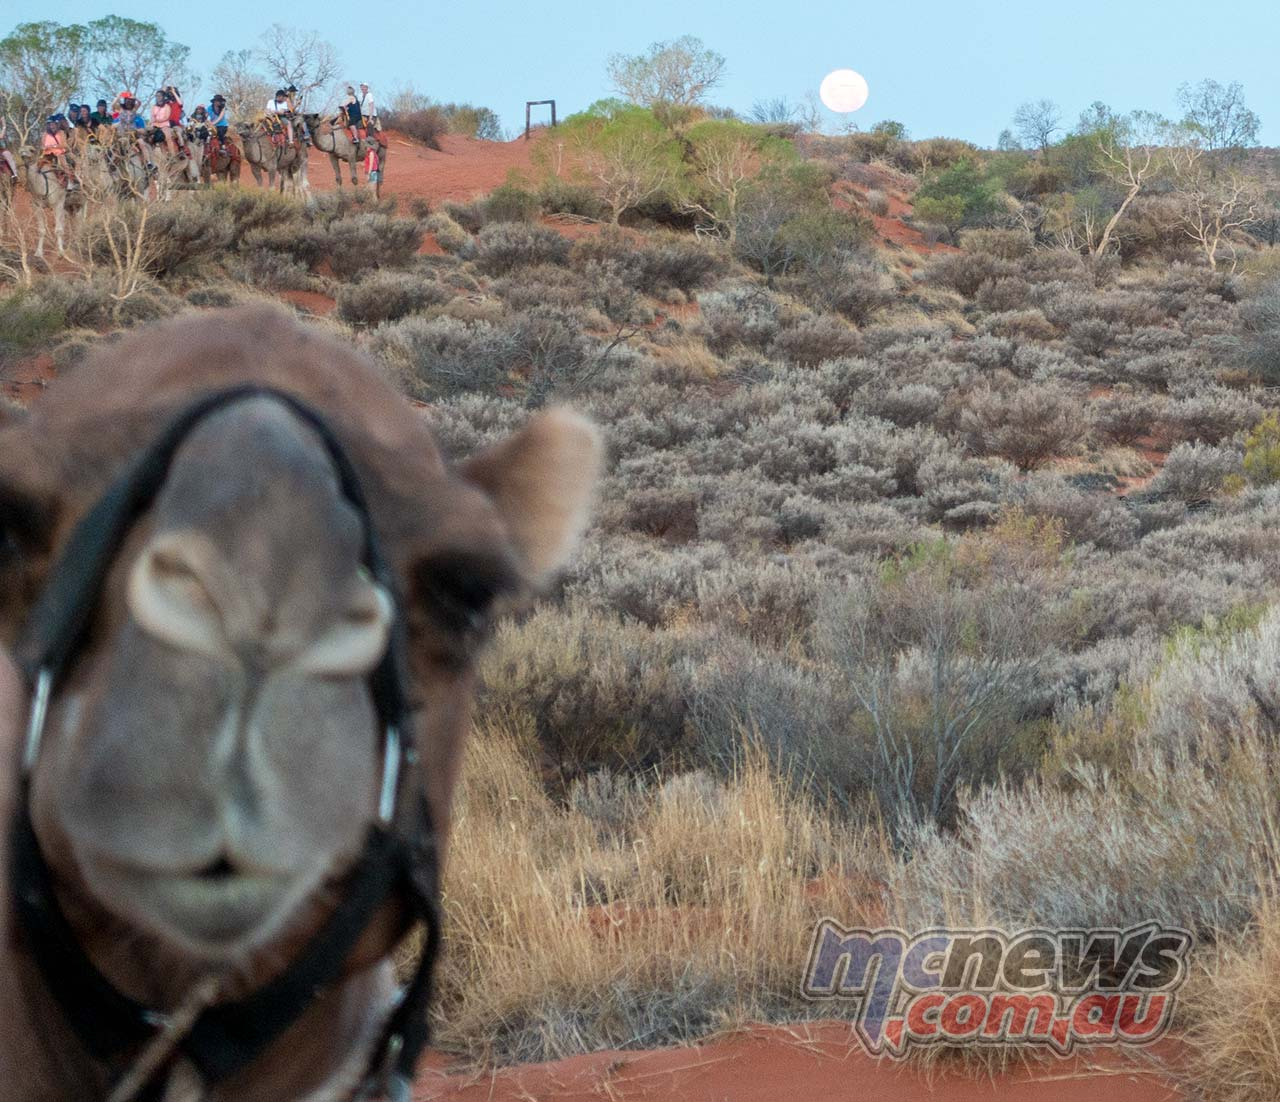 Honda Africa Twin Camel MoonRise Day